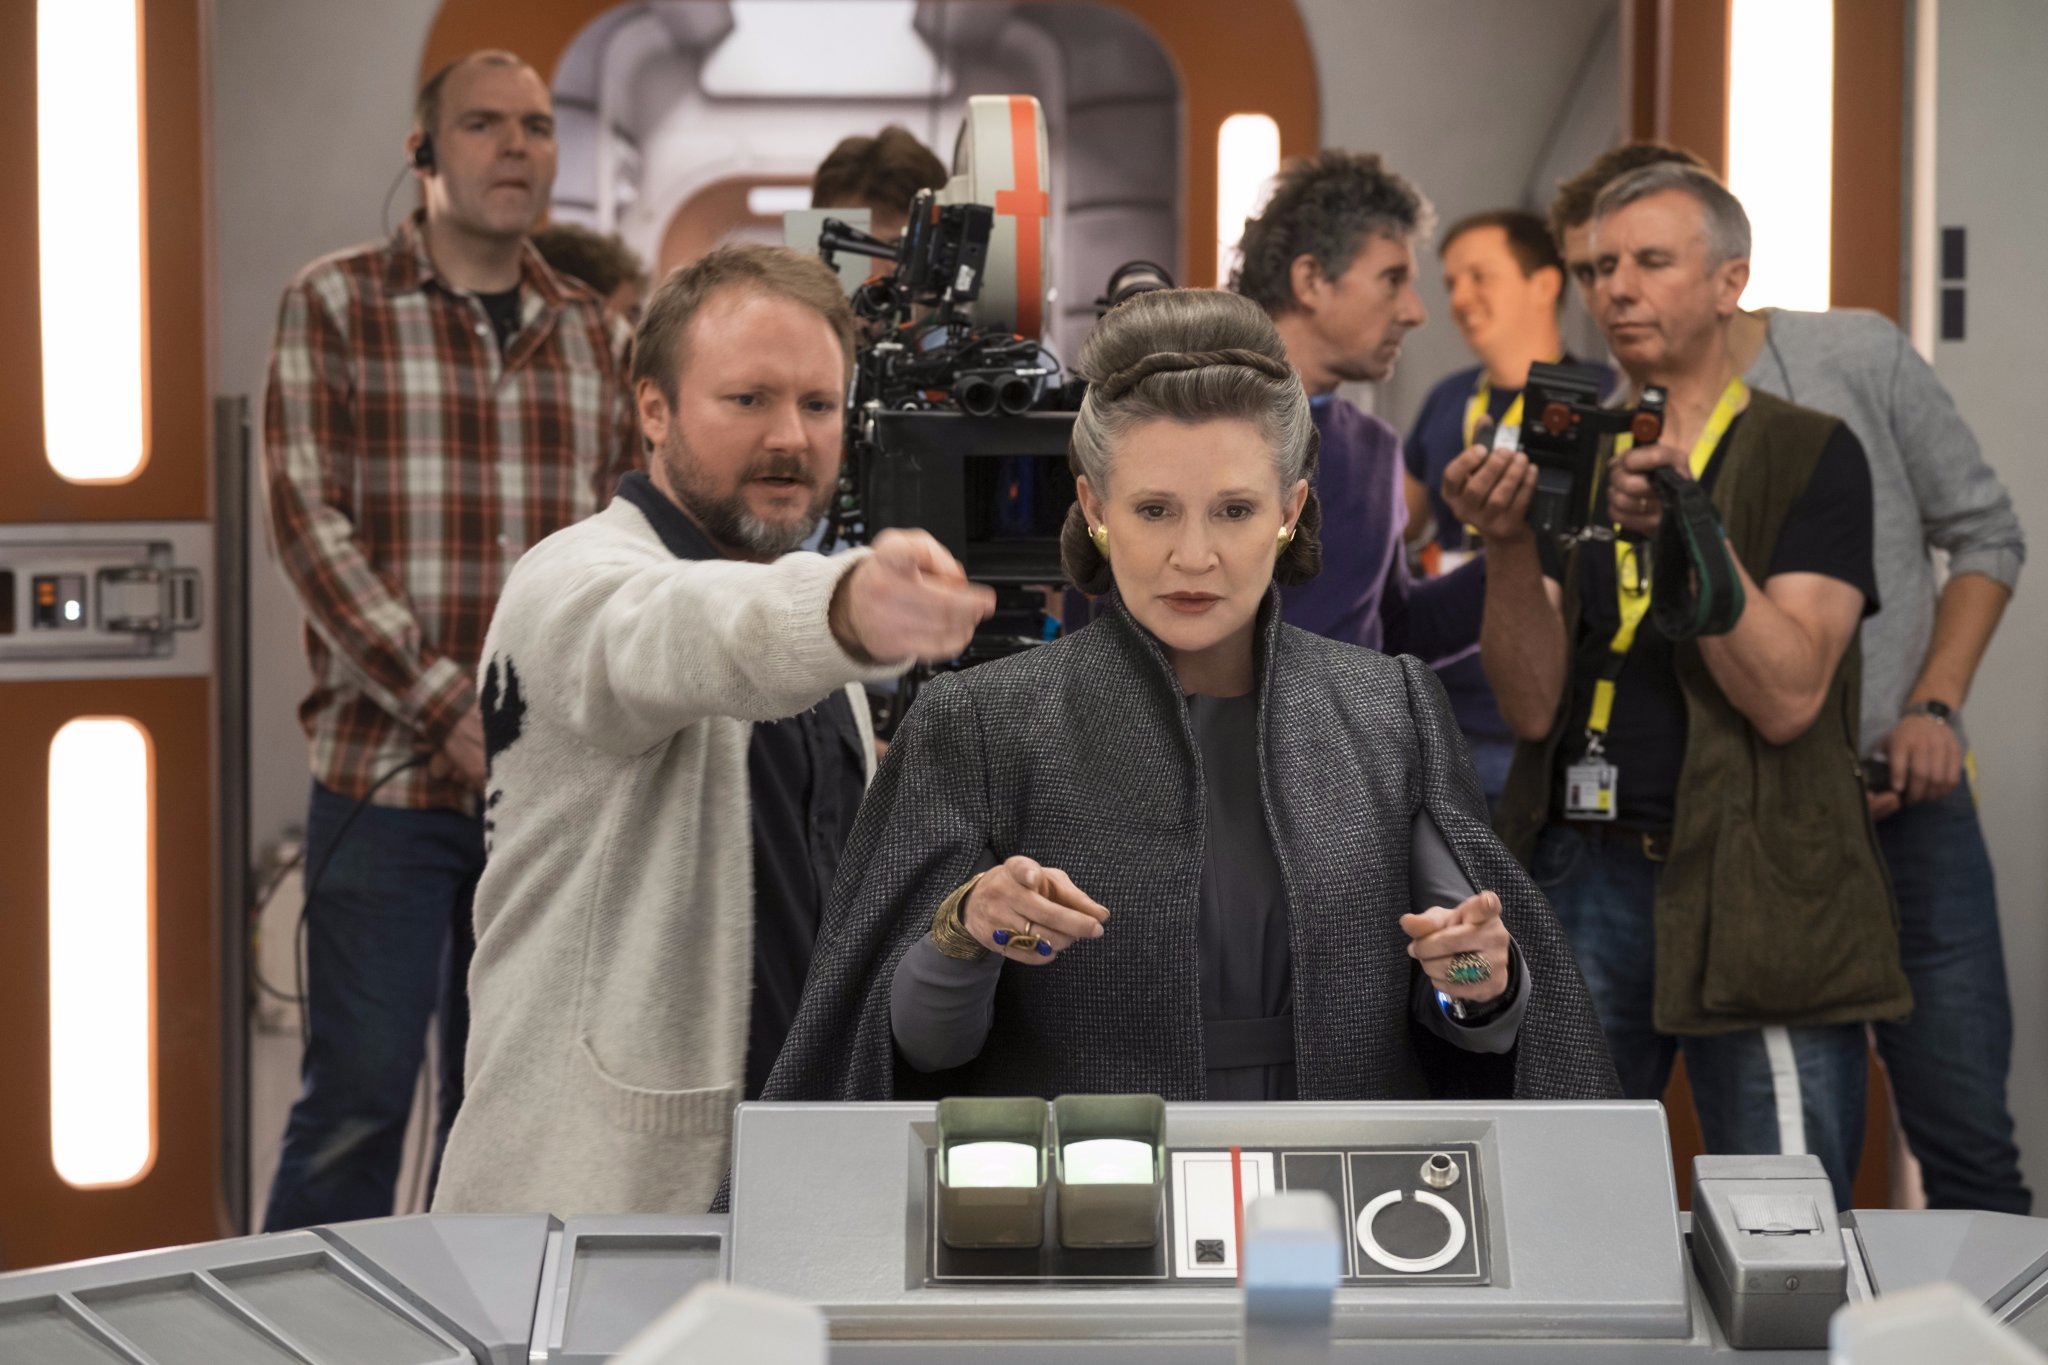 'Star Wars: The Last Jedi' second-highest opening ever in North America